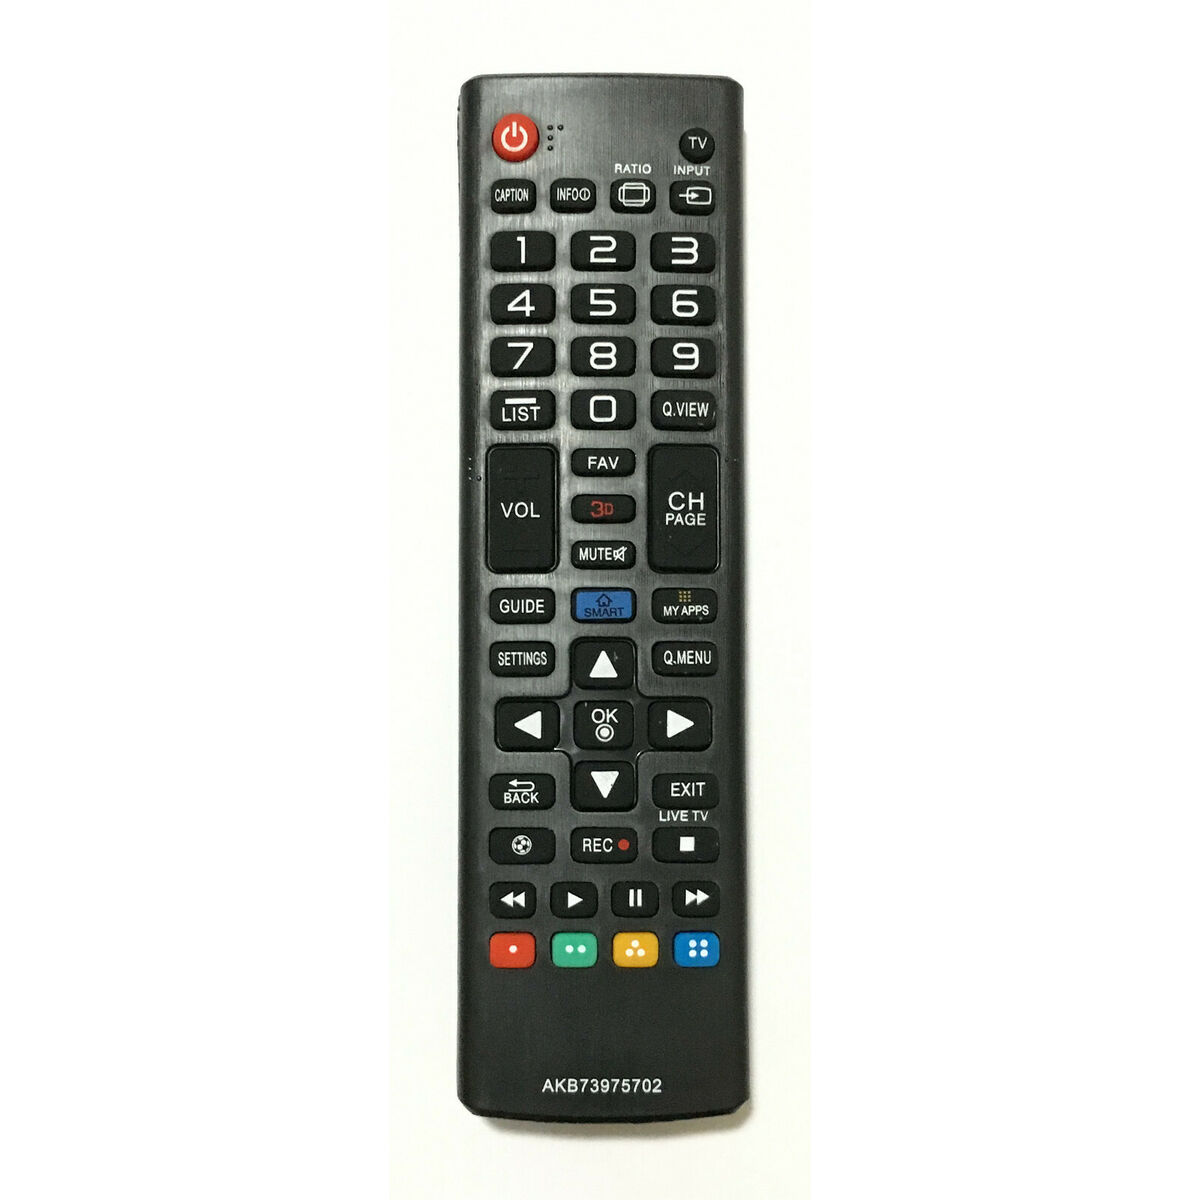 For Tv Model - Products on Ebay